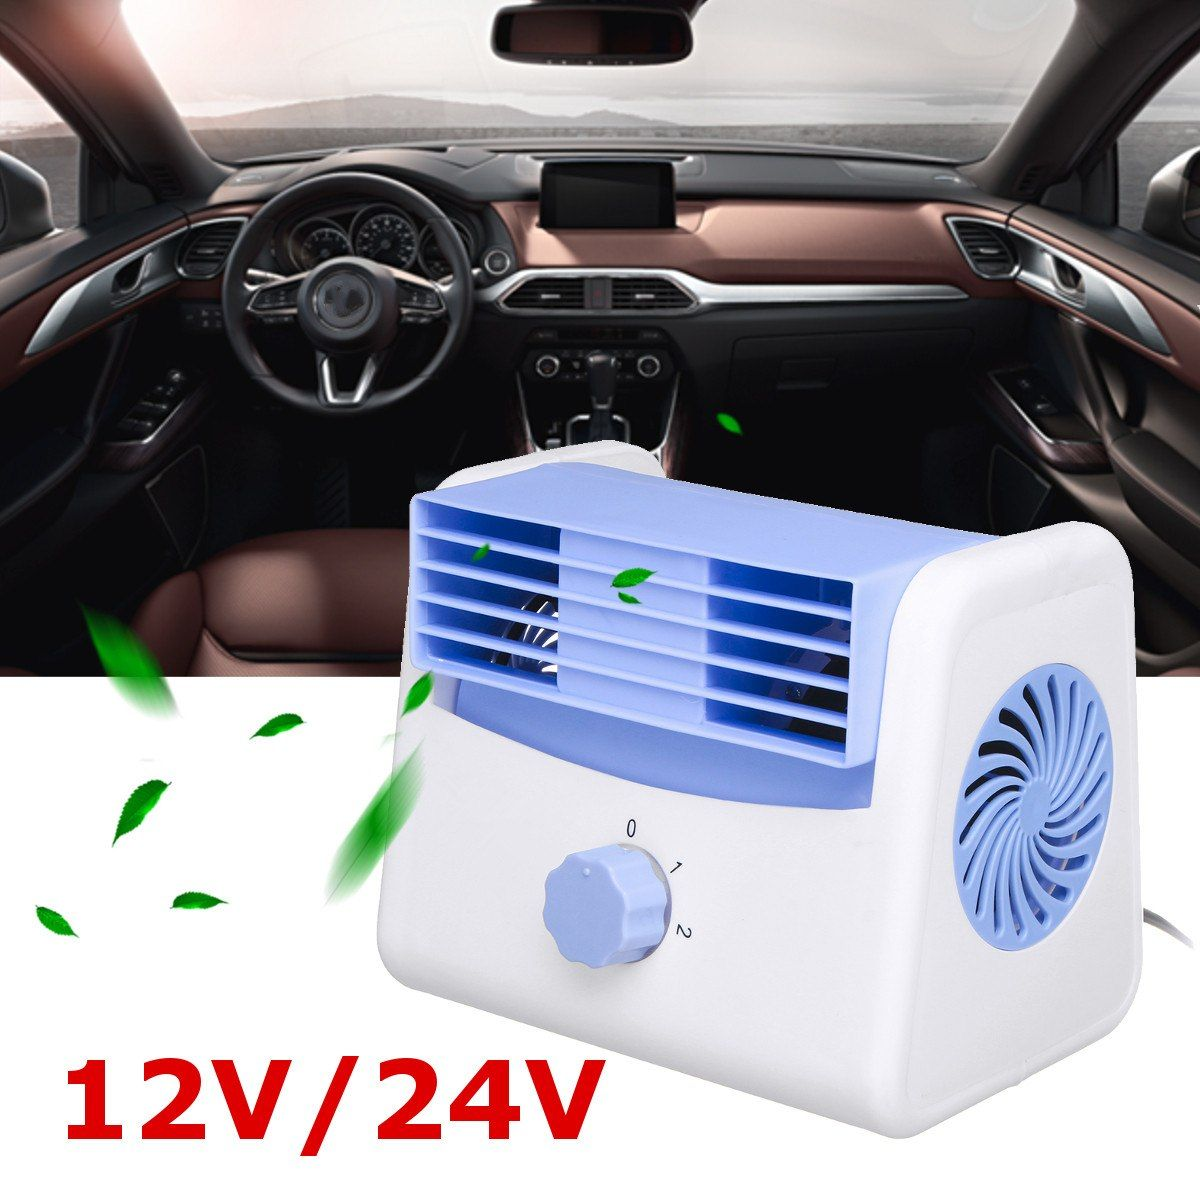 12v 24v Car Cooler Fan Auto Air Conditioner Cooling Speed